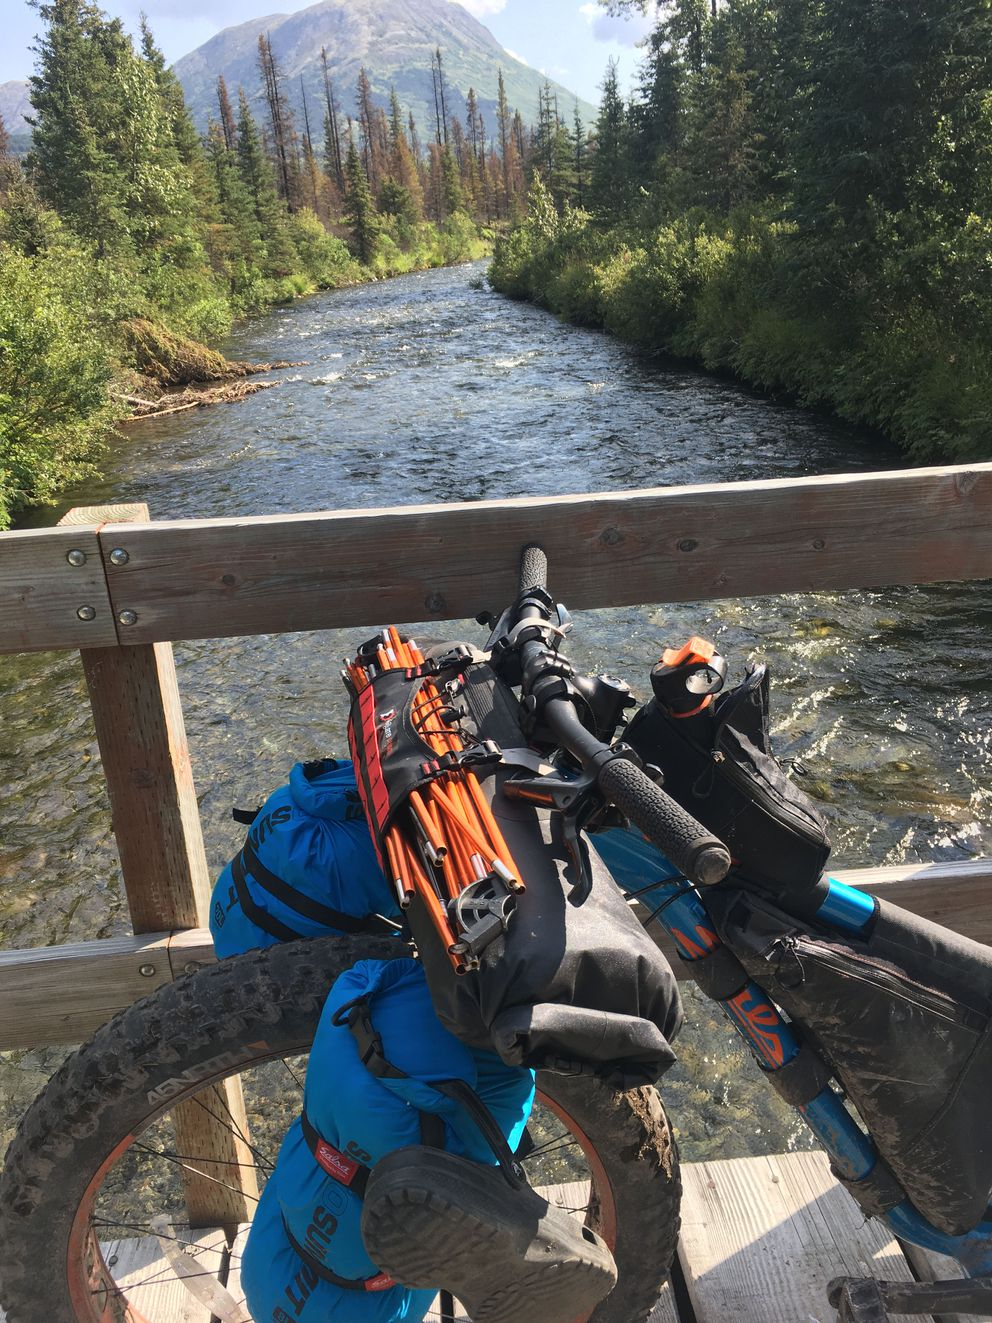 All Harvey's bike is packed for camping, complete with orange tent poles, near Trout Lake. Harvey recommends tightly rubber-banding the poles together before strapping them to the bike. (Photo by Alli Harvey)